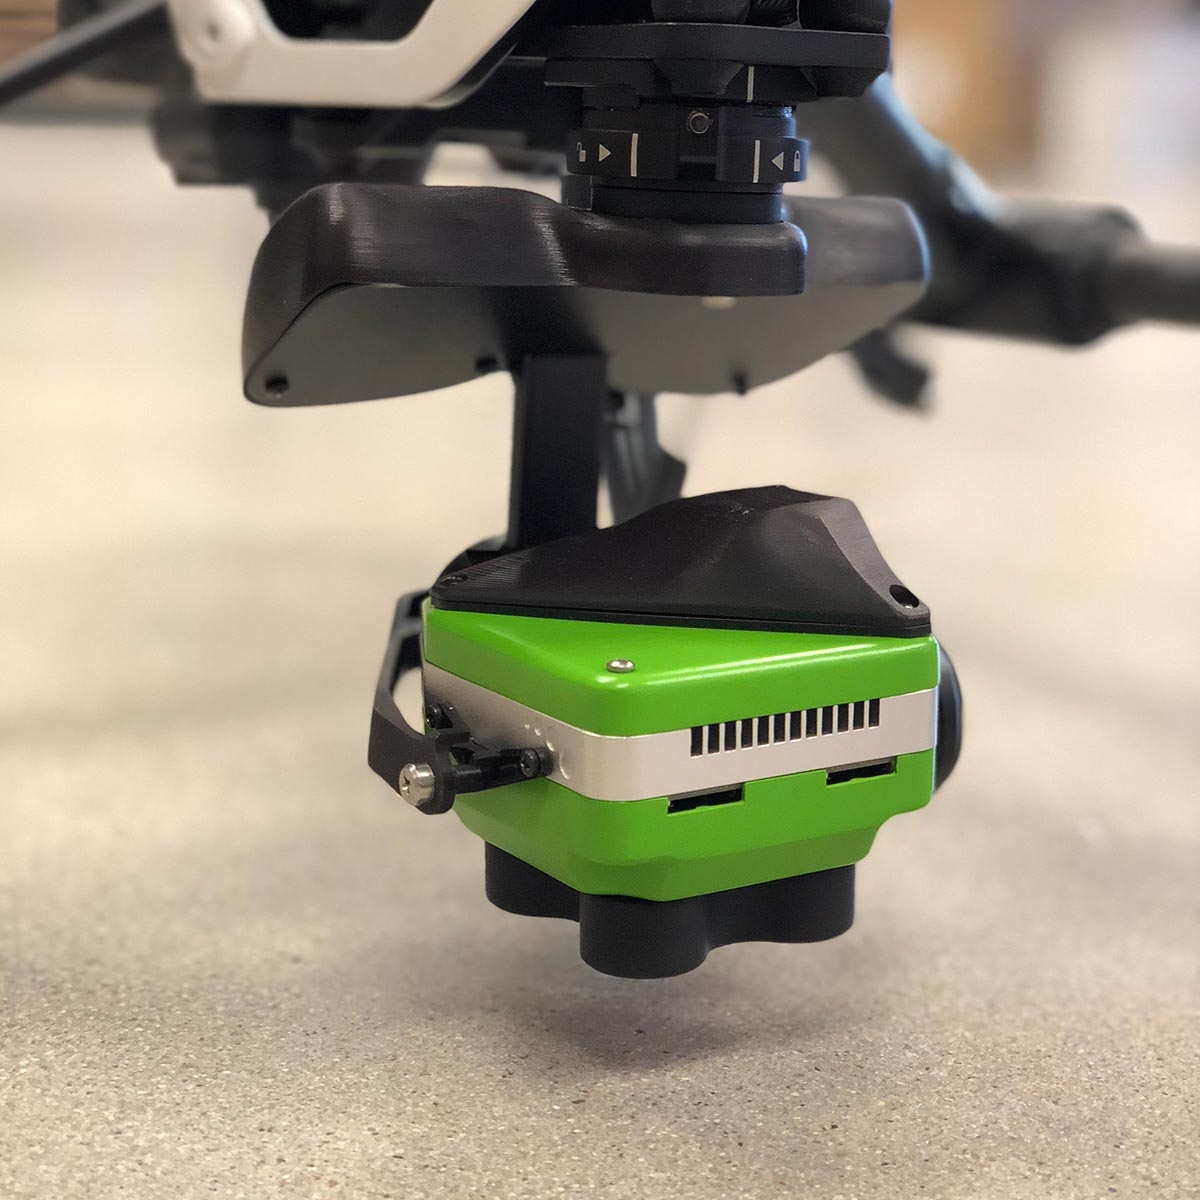 Sentera - Complete photographic solutions for drone equipment